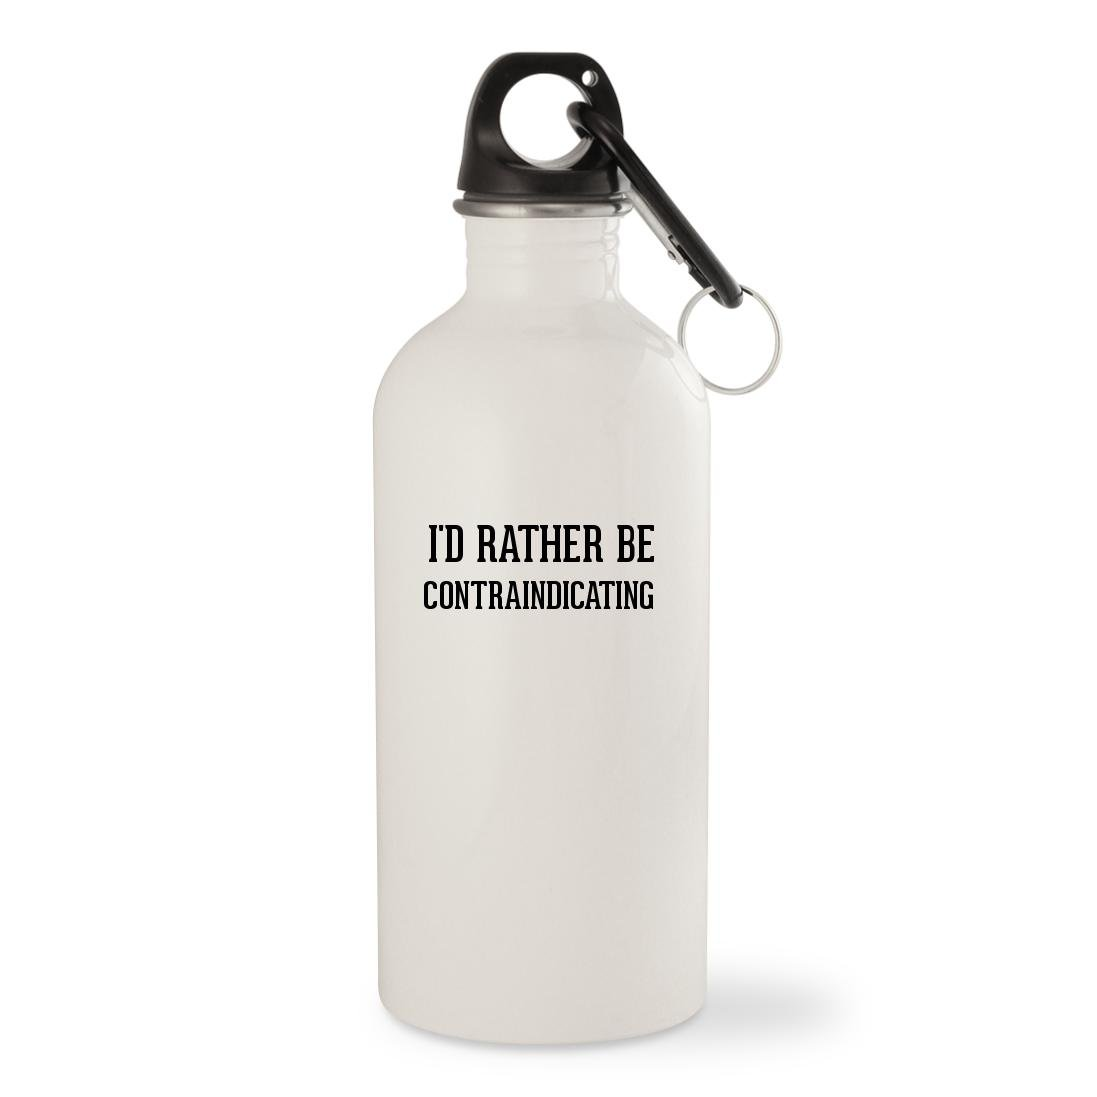 I'd Rather Be CONTRAINDICATING - White 20oz Stainless Steel Water Bottle with Carabiner